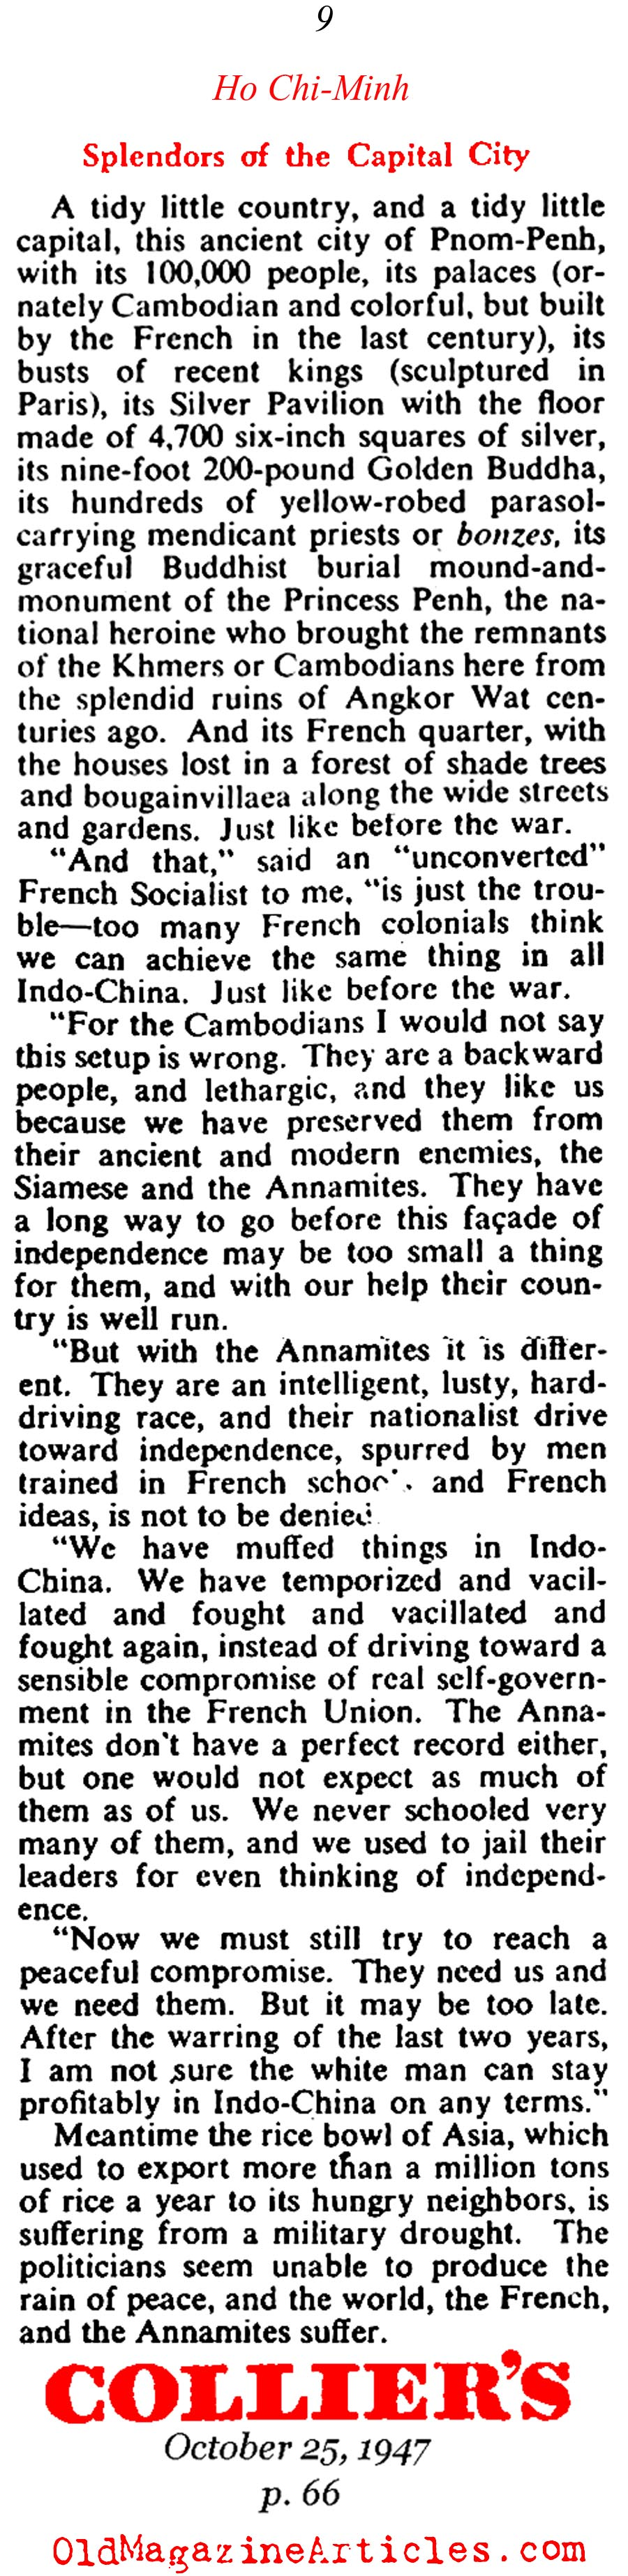 Ho Chi-Minh on the March... (Collier's Magazine, 1947)